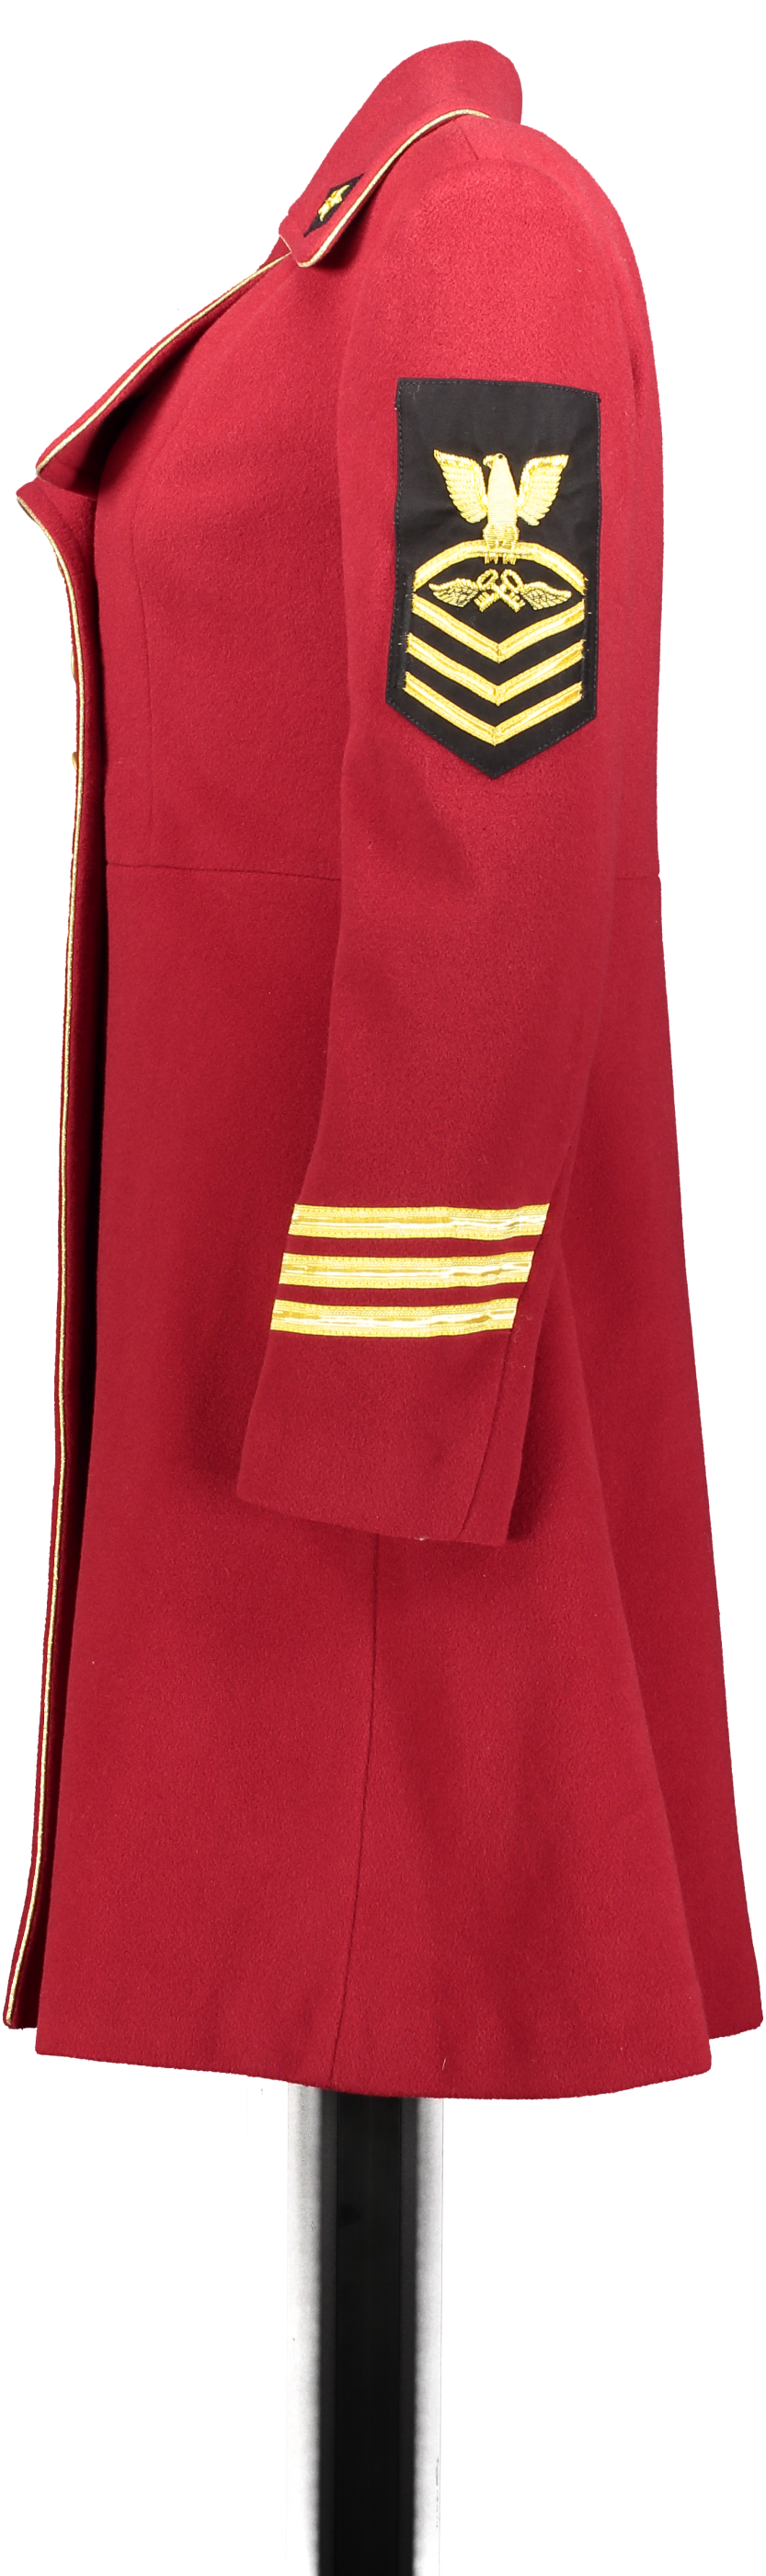 history red Coat side _Front